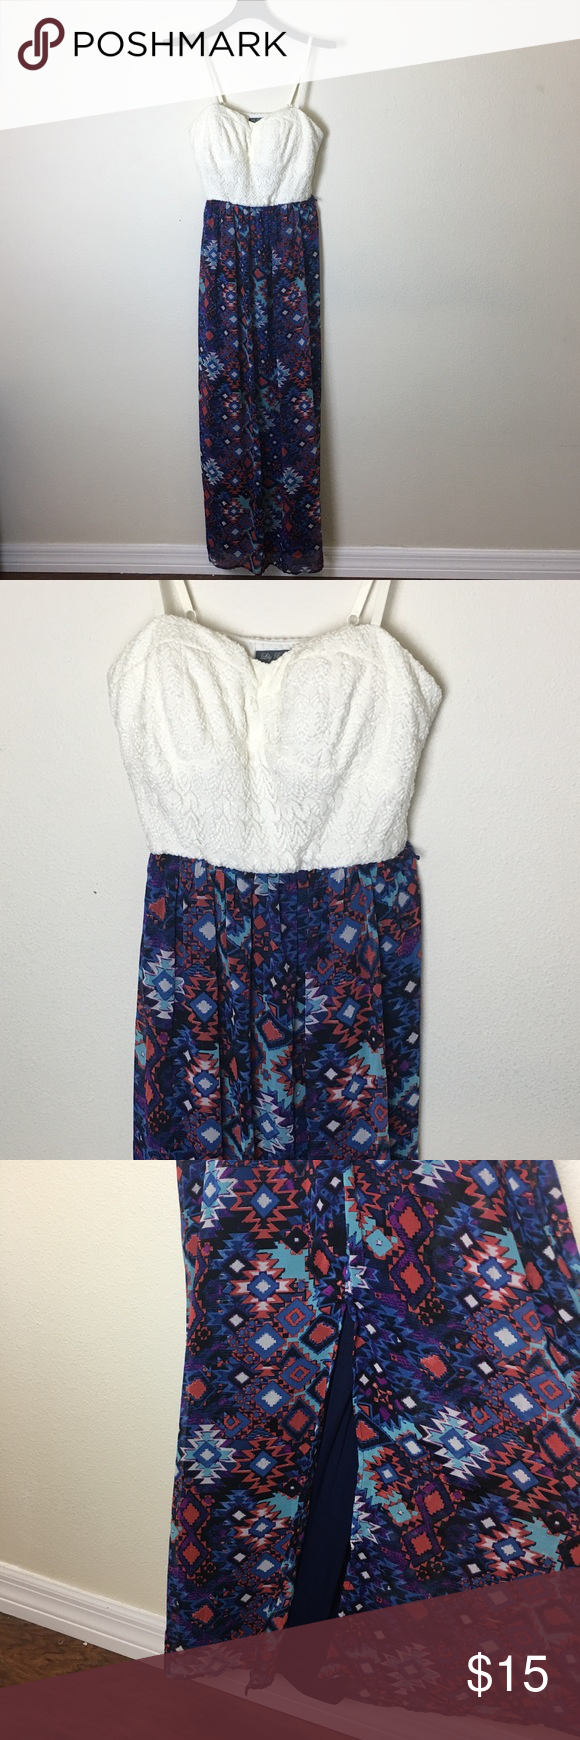 2fe474afb52dbd Lily Rose maxi dress spaghetti straps size XL Lily rose brand Size XL Lace  top with spaghetti straps Bottom is colorful with a beautiful pattern Lily  Rose ...